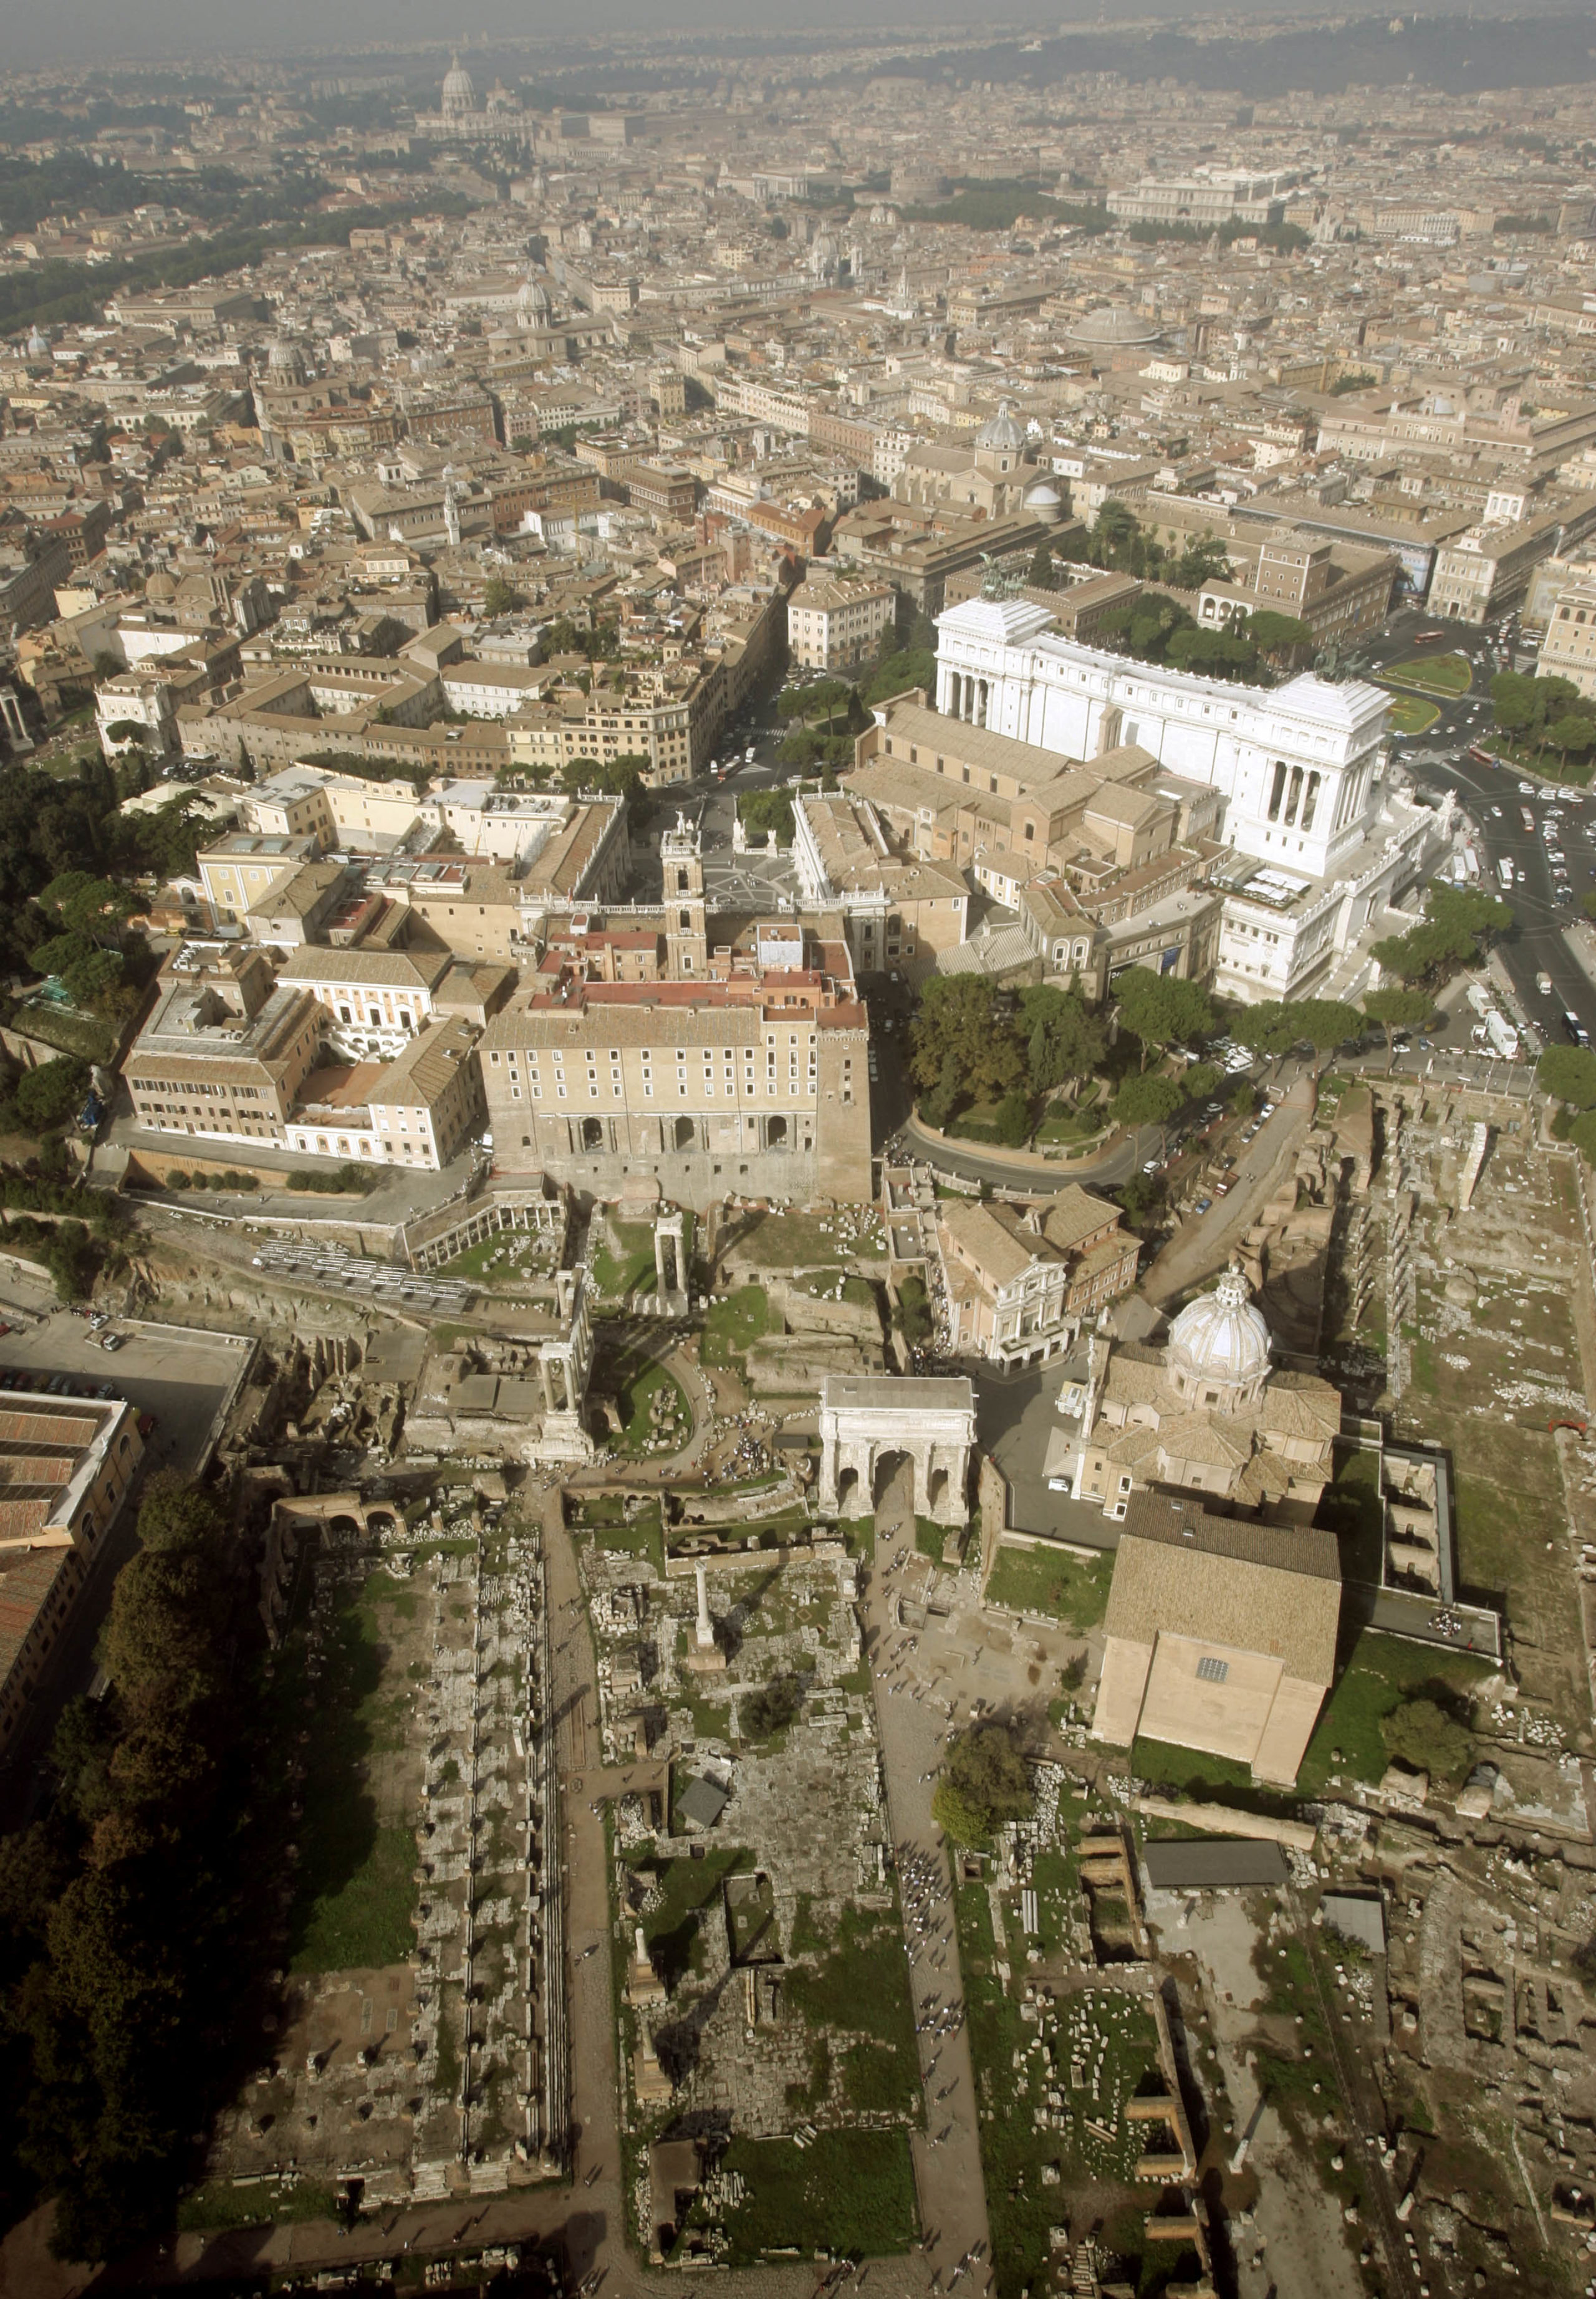 Rome's ancient Forum lies in the centre of the Italian capital in an aerial file photo October 24, 2004. In a discovery that may force the rewriting of Ancient Roman history, Italian archaeologists digging in the Forum have unearthed the ruins of a palace they say confirms the legend of Rome's birth. NO RIGHTS CLEARANCES OR PERMISSIONS ARE REQUIRED FOR THIS IMAGE. REUTERS/Alessandro Bianchi AB/MA